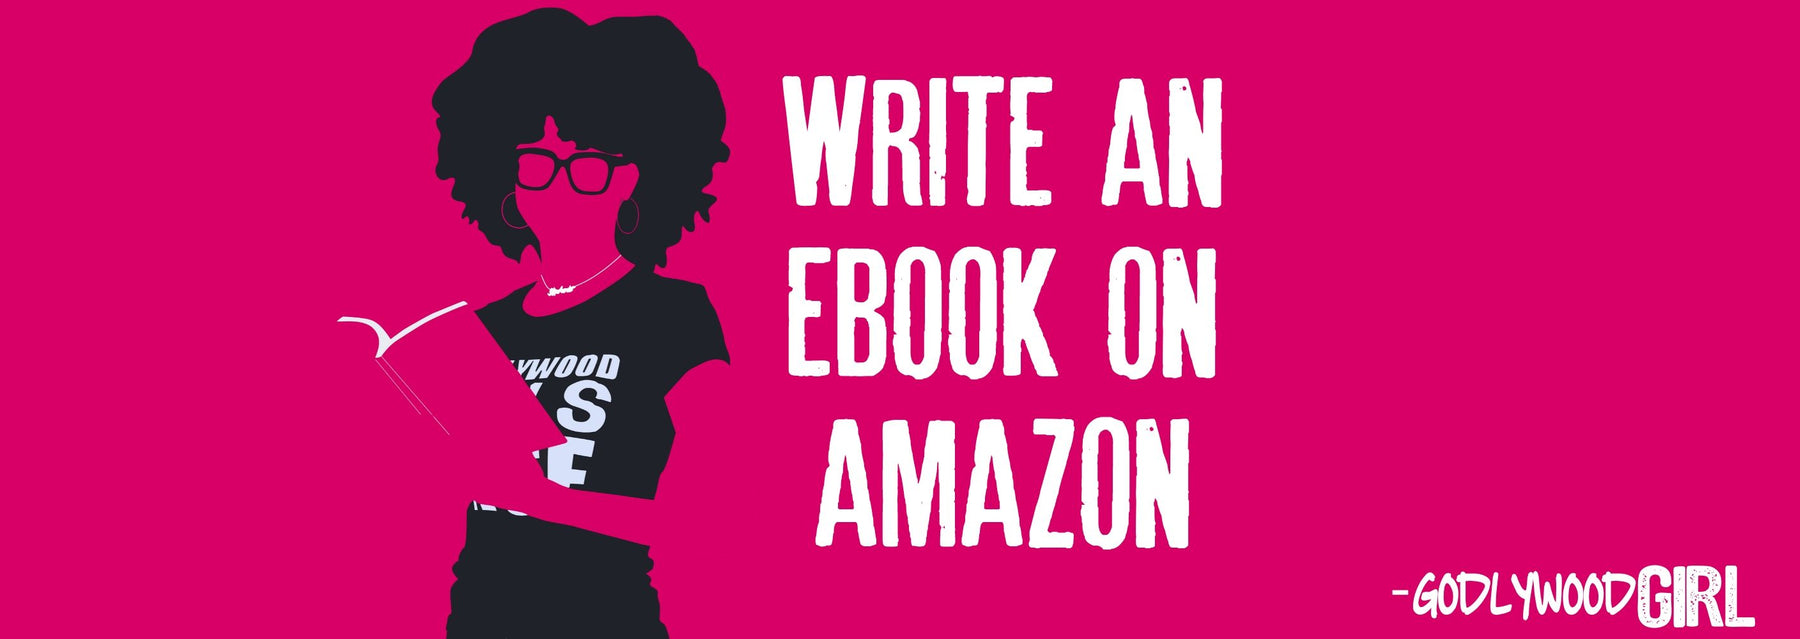 WRITE AN EBOOK AMAZON (How to Self-Publish Your First Book) || HOW TO